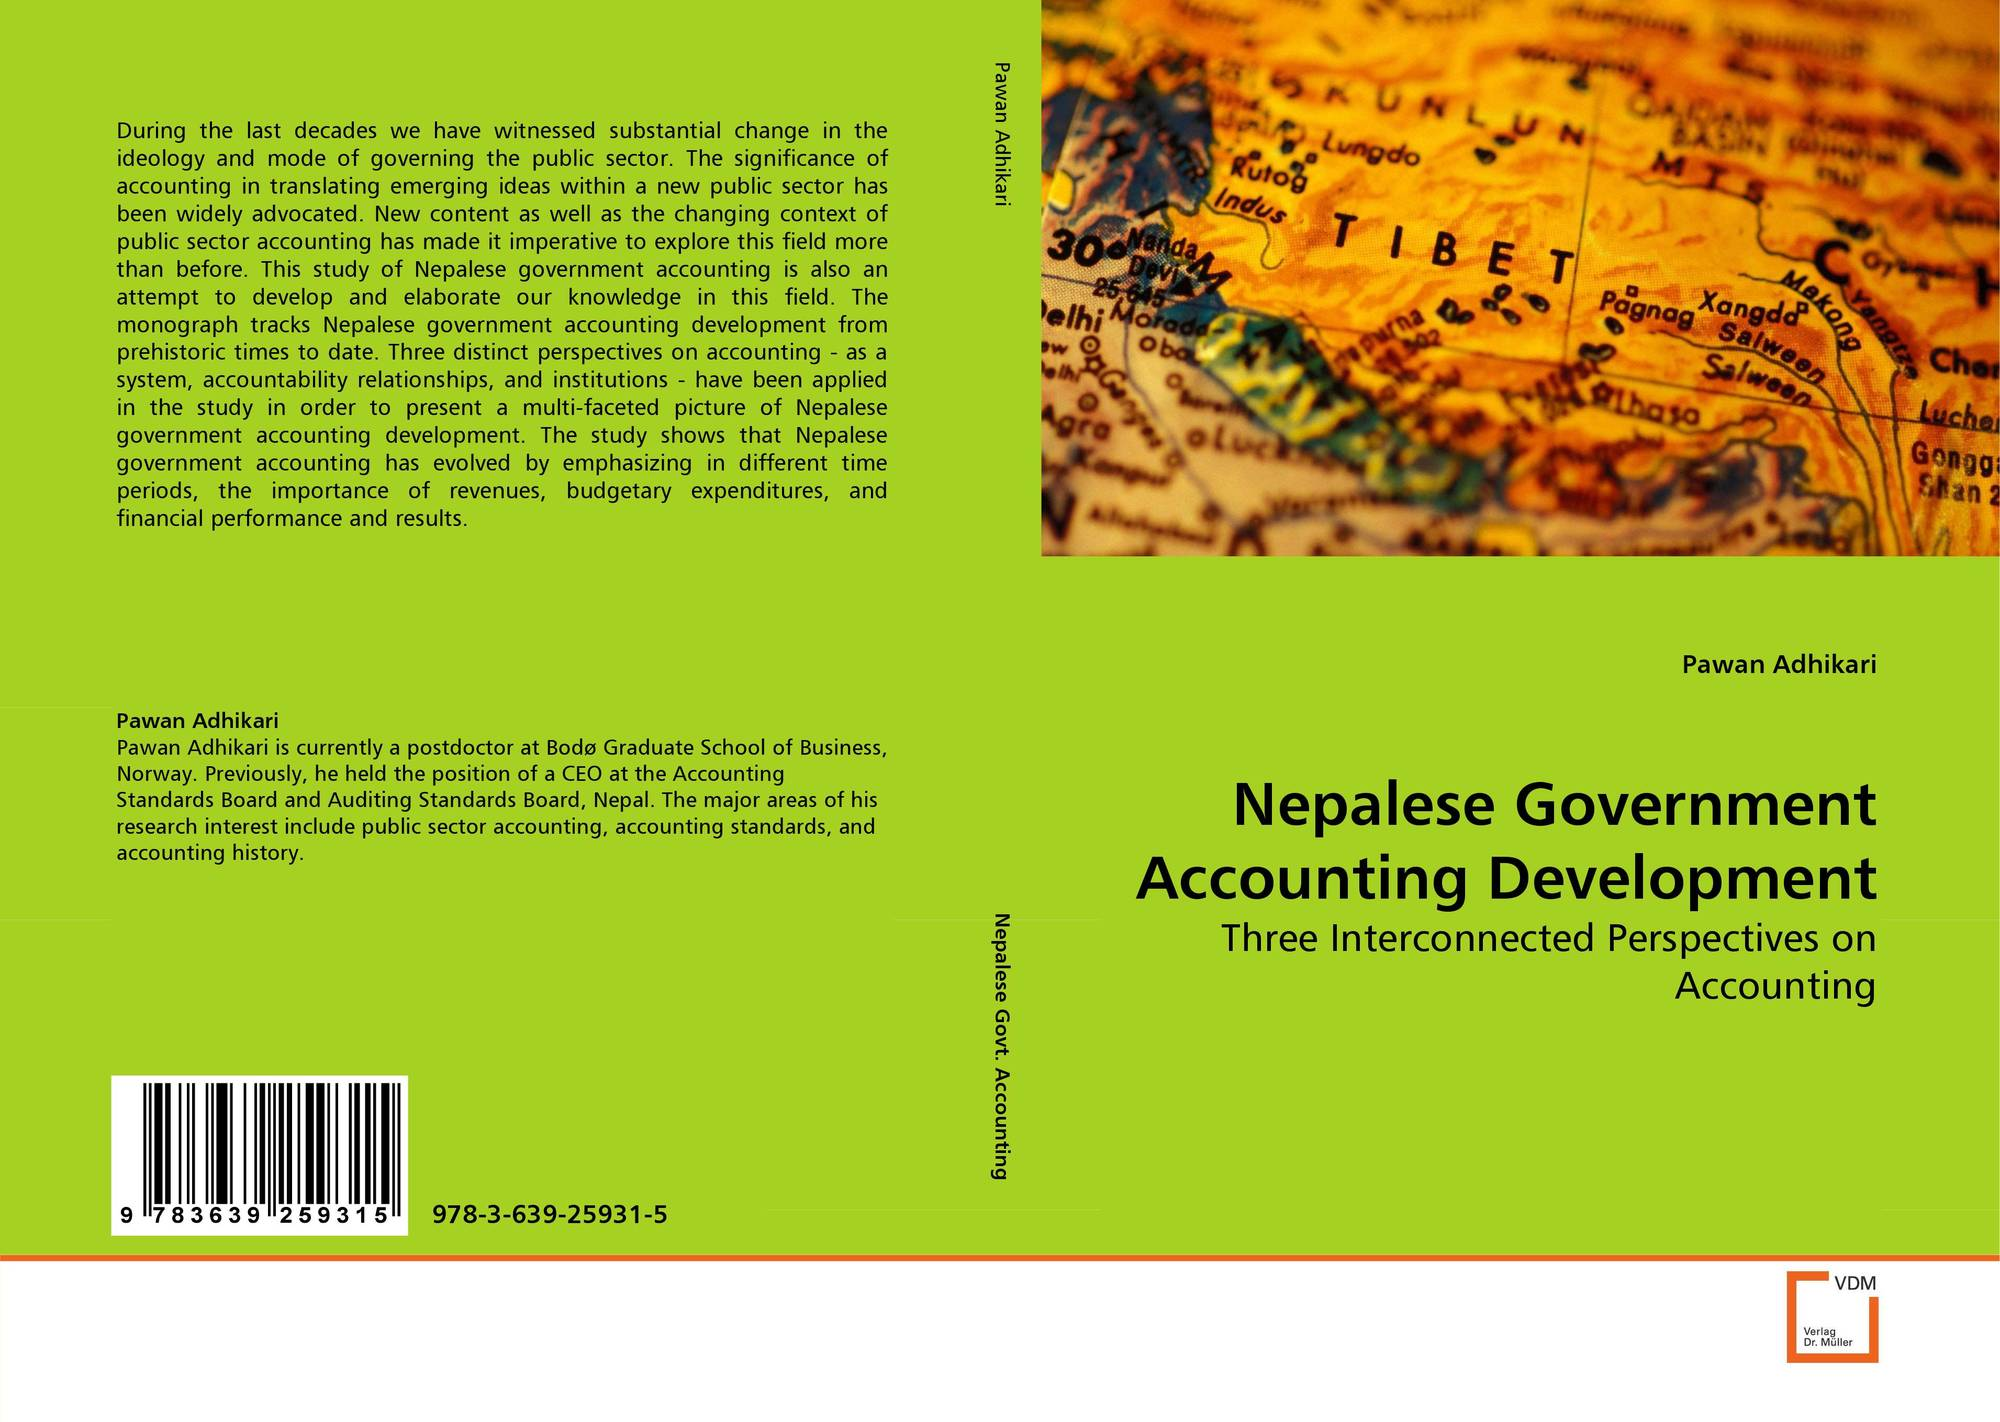 management accounting practice in nepal The accounting training at broadway infosys nepal covers the following: inventory management, financial reporting and general accounting practices in nepal.